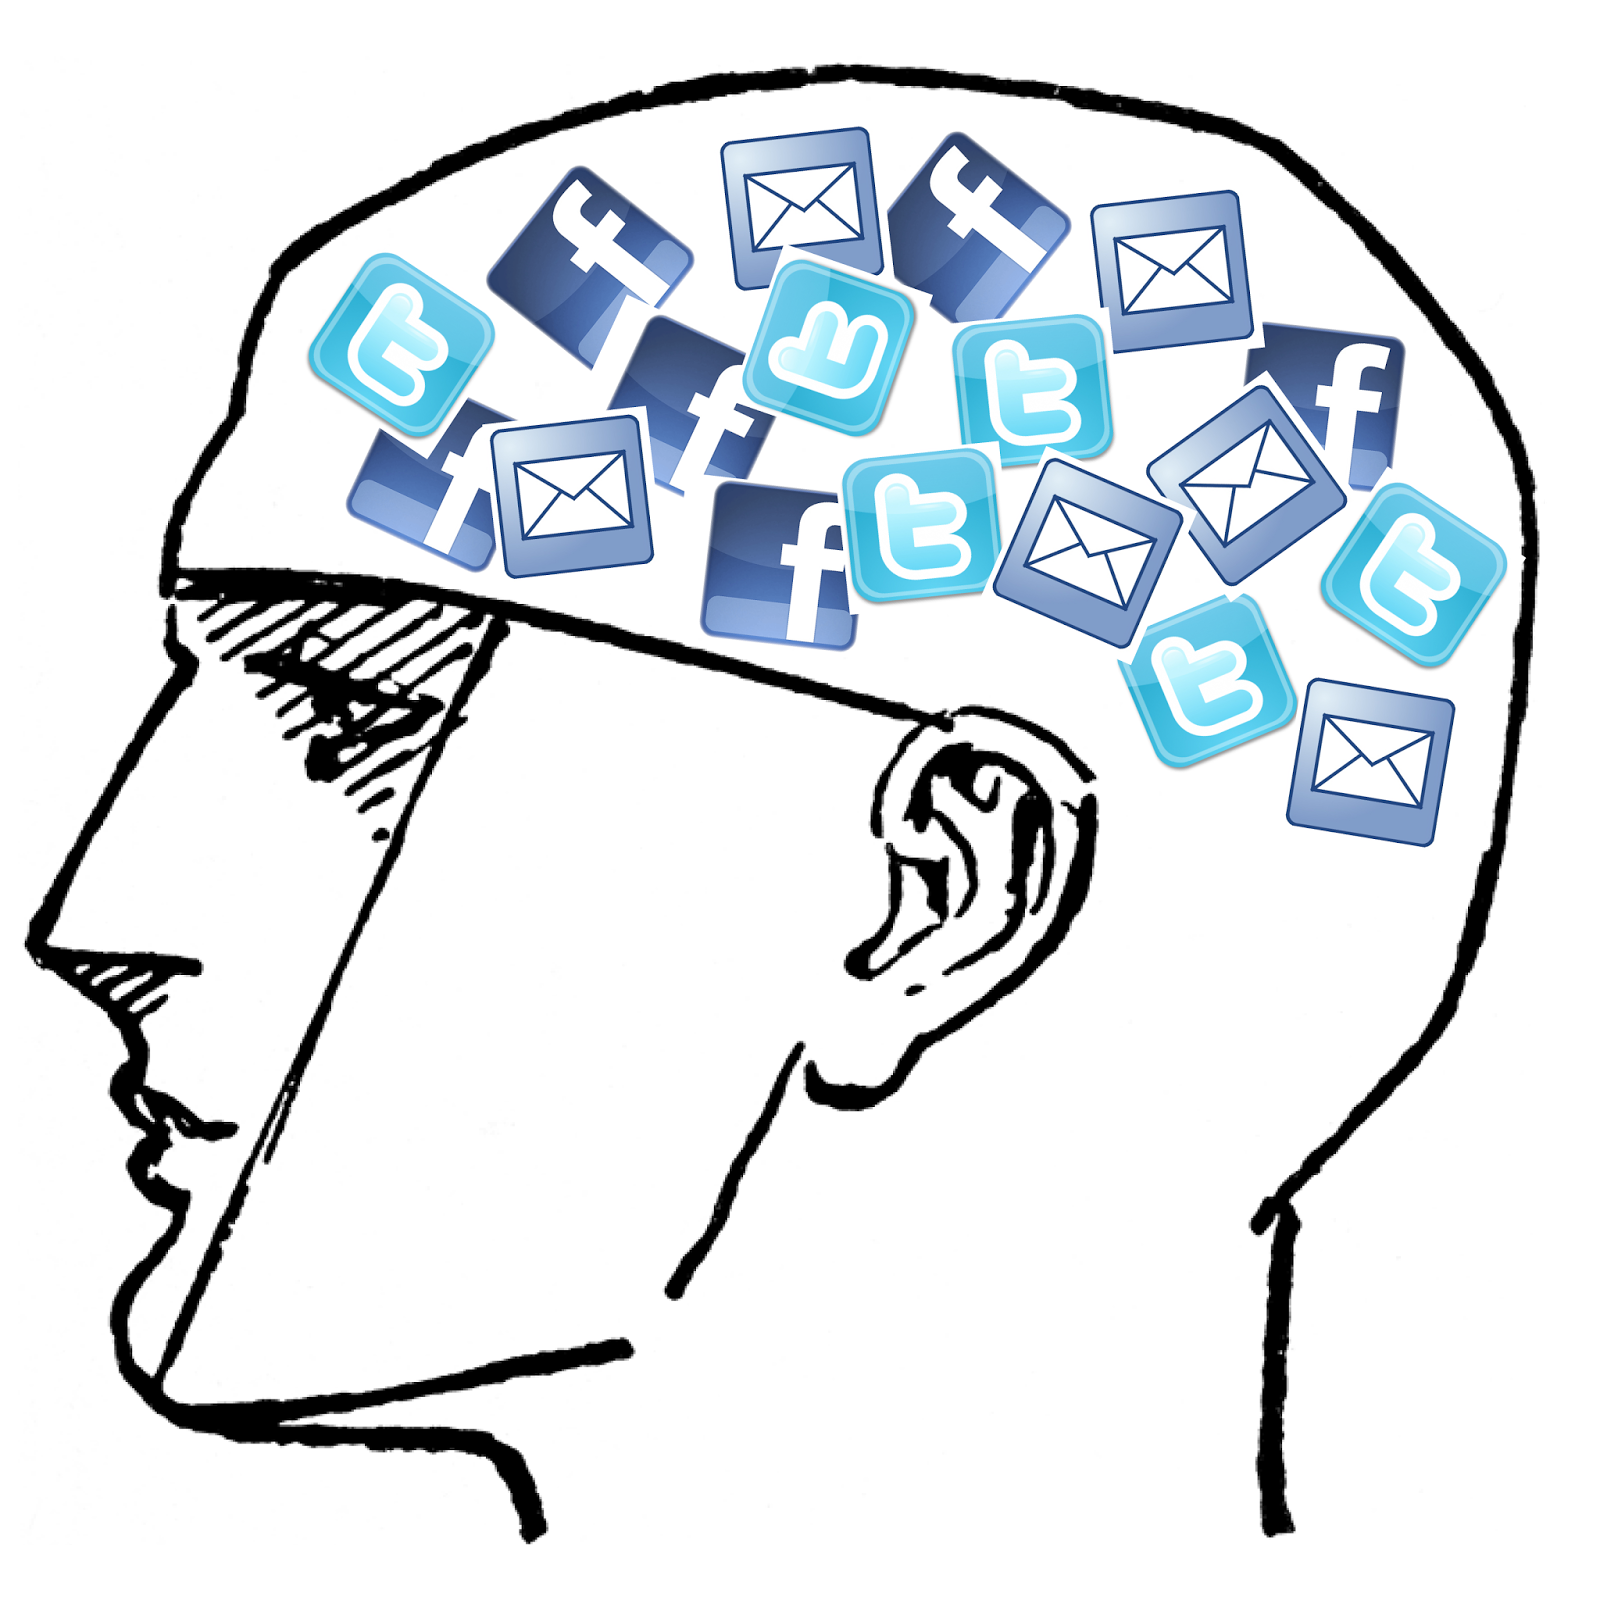 A man with twitter and Facebook in his brain